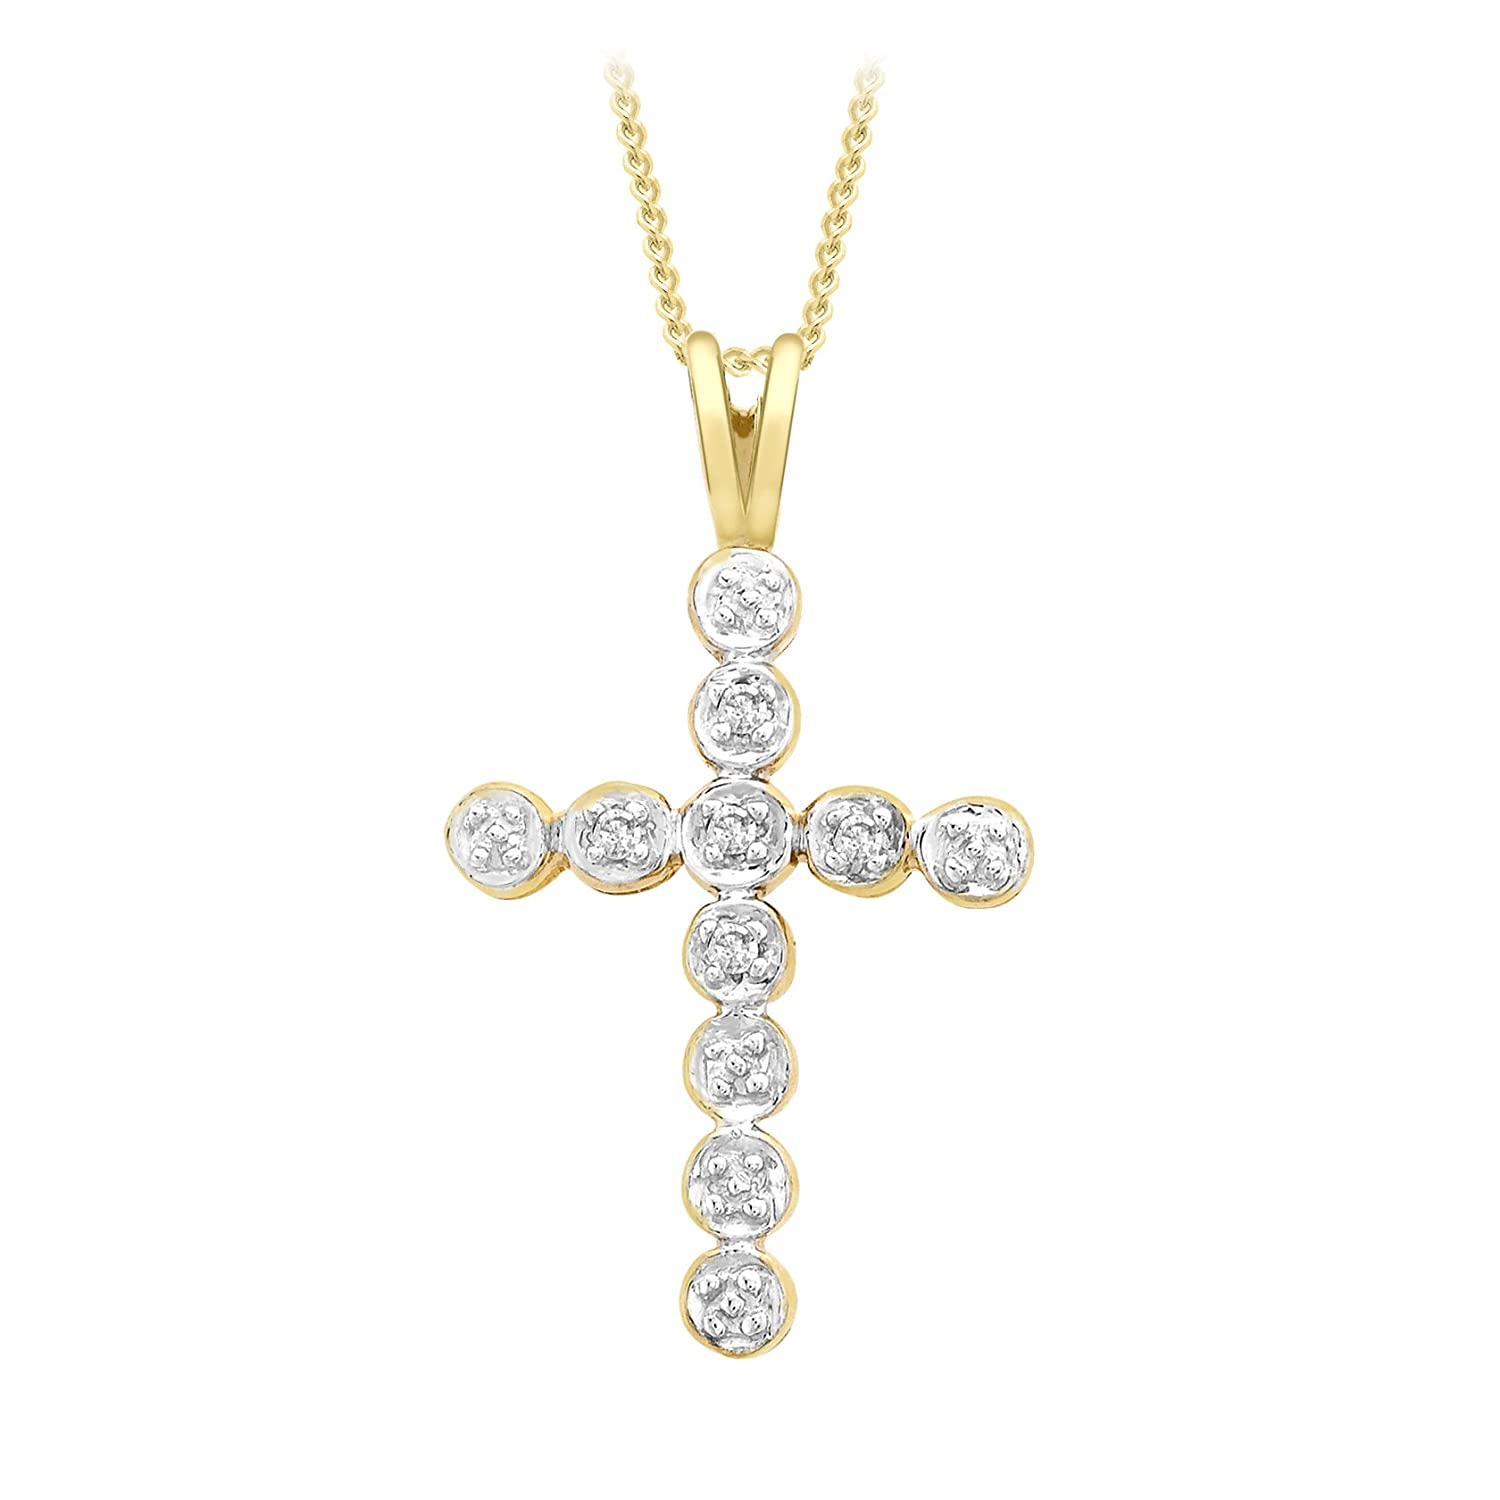 68f3175c84684 Carissima Gold 9 ct Yellow Gold Diamond Cross Pendant on Chain Necklace of  46 cm/18 inch